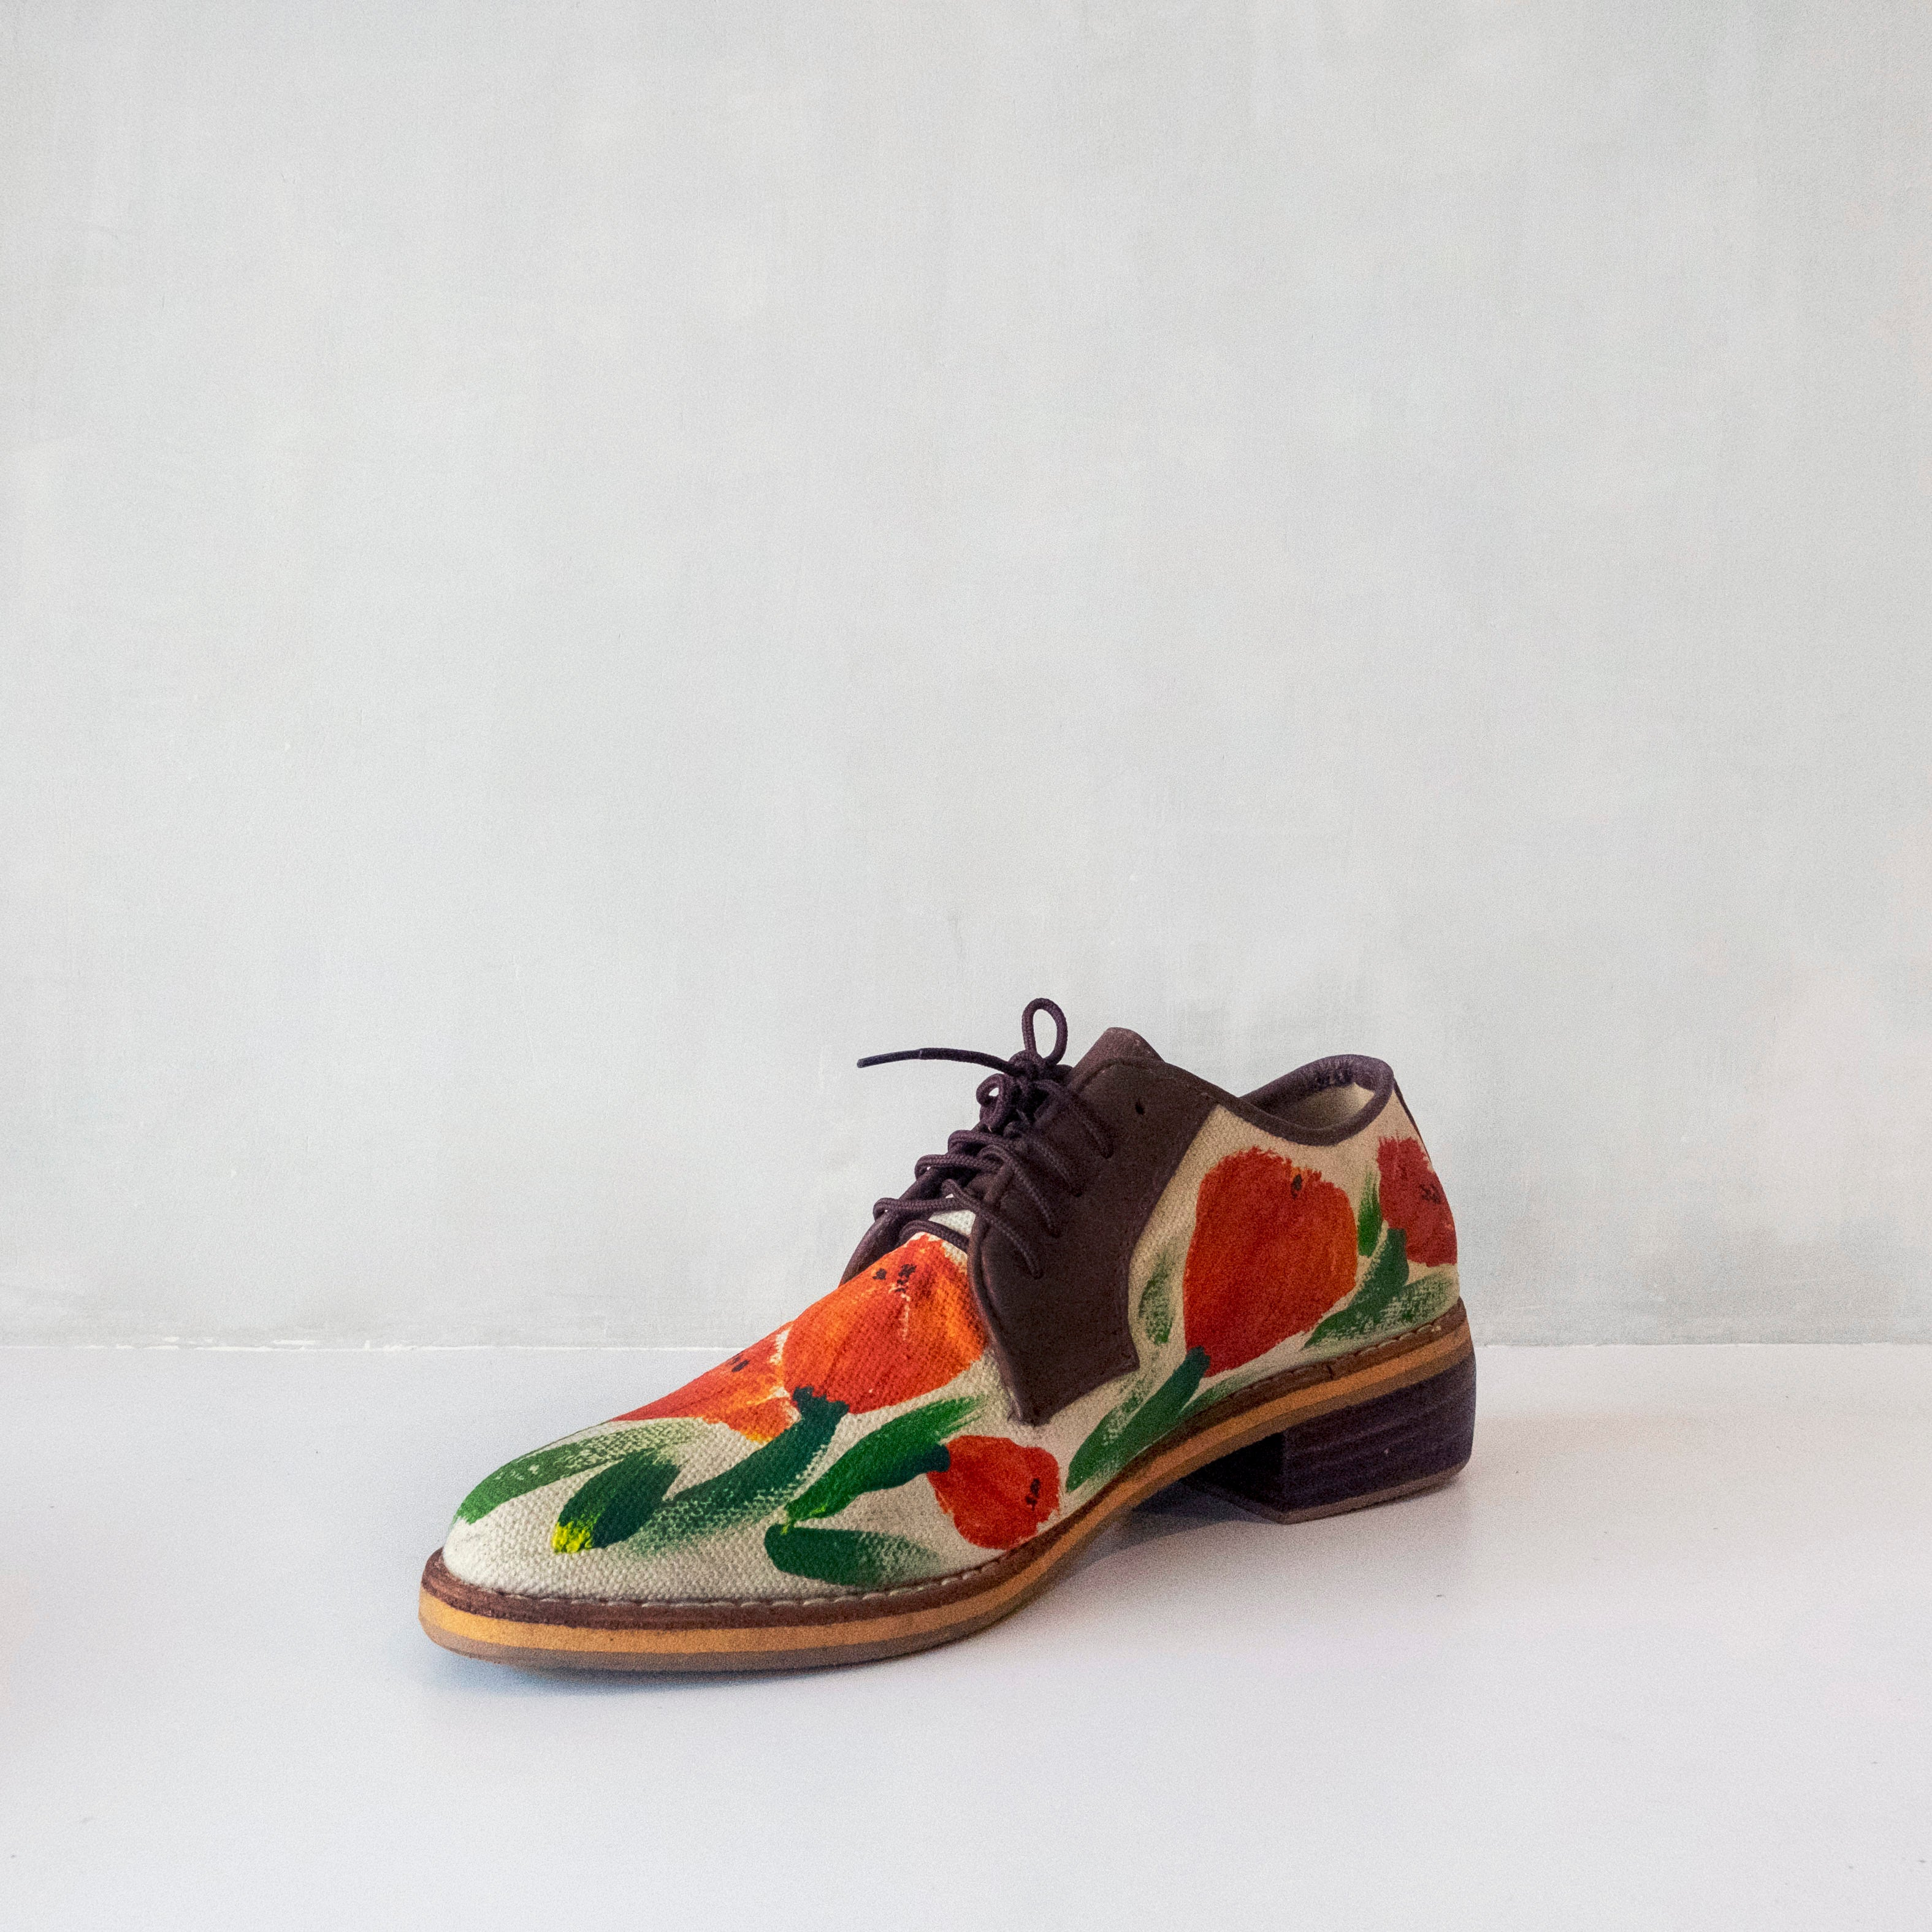 The Oxfords in Tulips